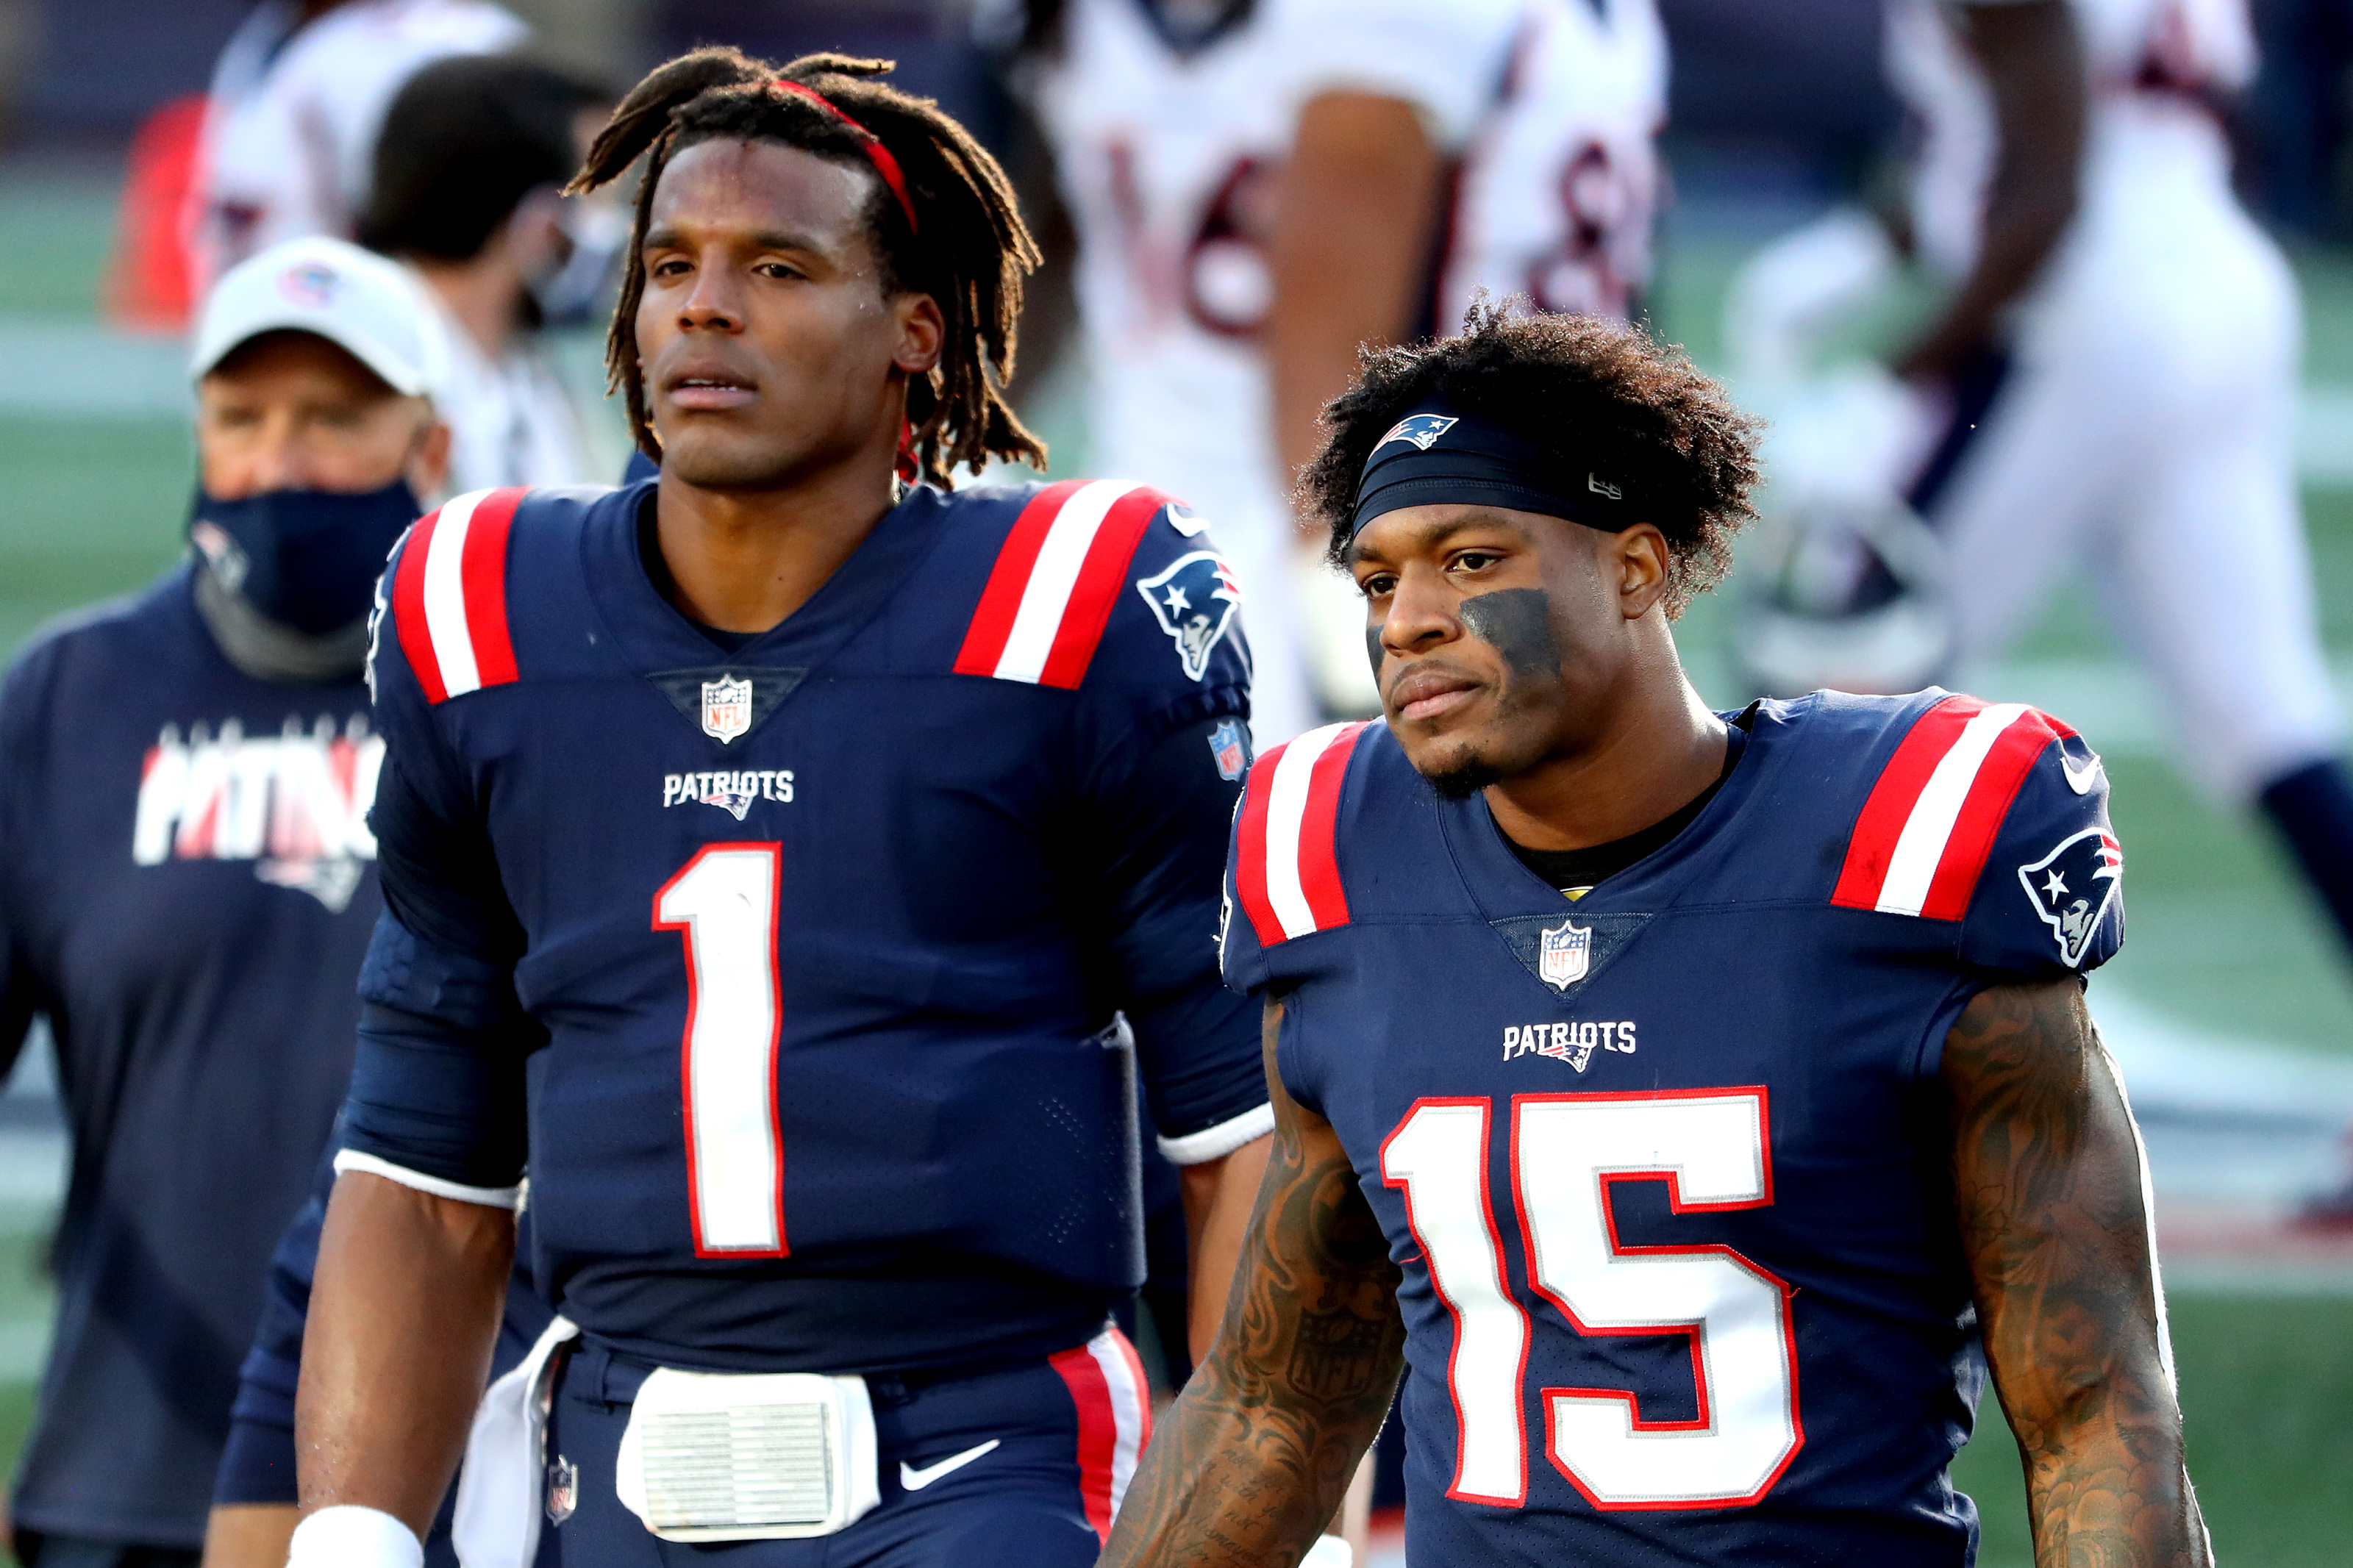 Patriots: Bill Belichick's non-answer on N'Keal Harry question was telling